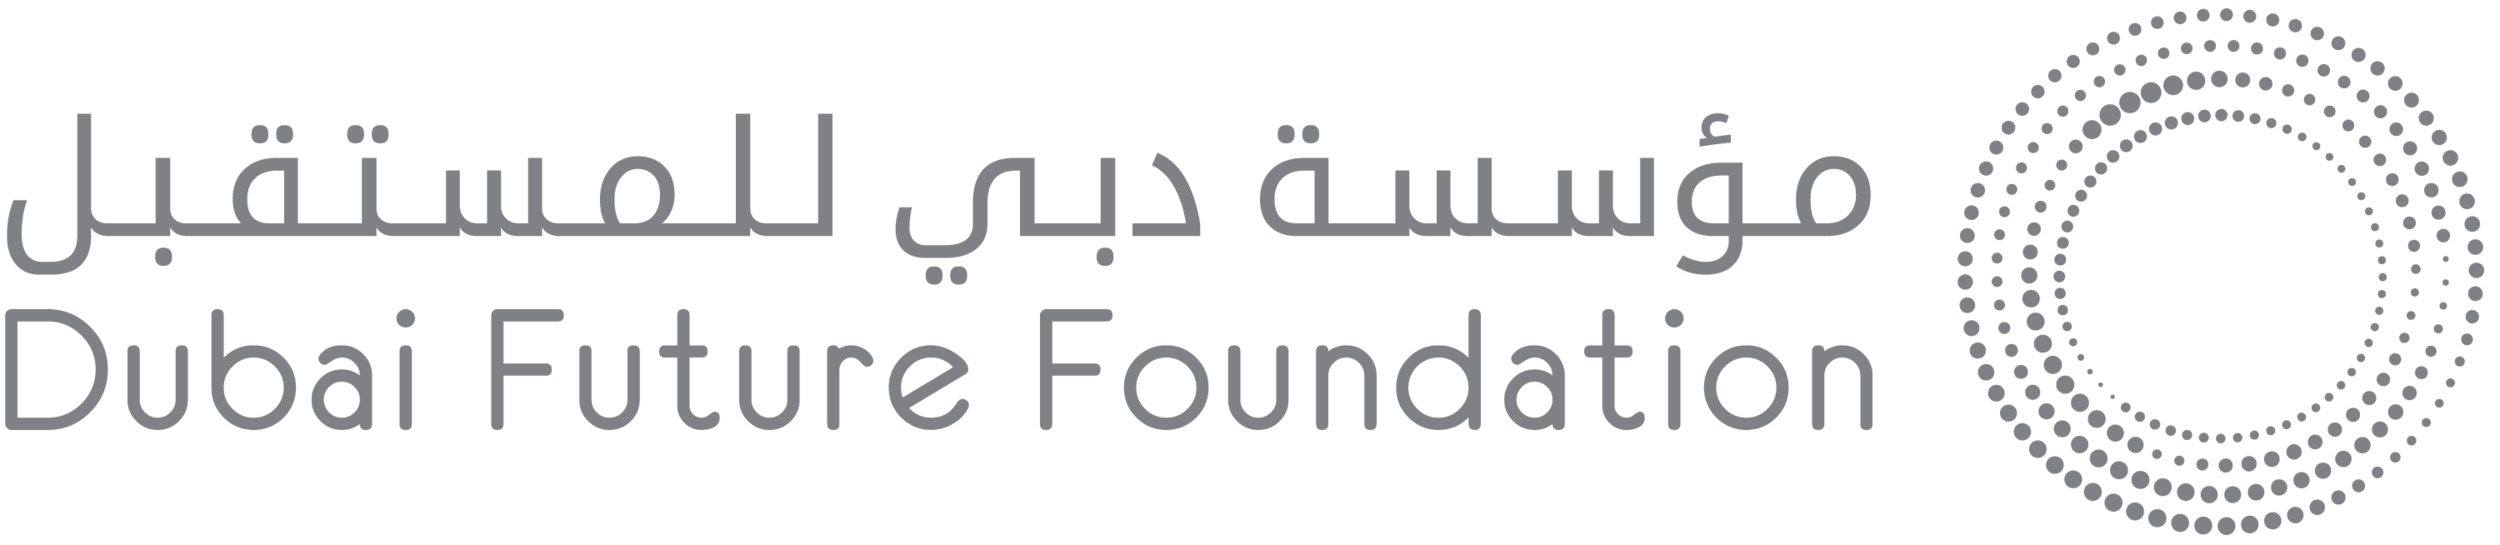 dubai-future-foundation.png